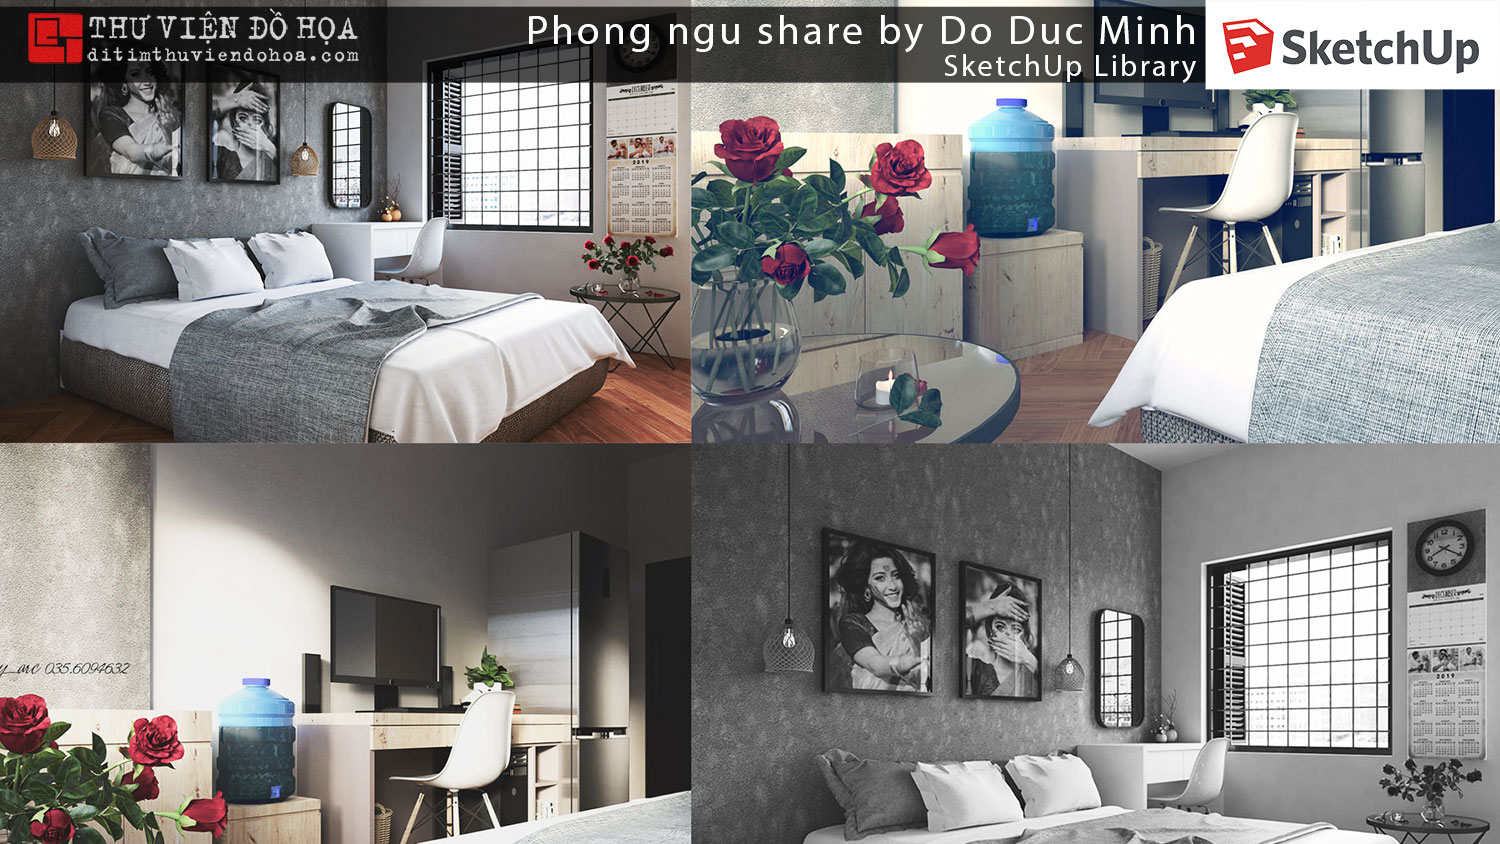 Sketchup Library - Phong ngu share by Do Duc Minh